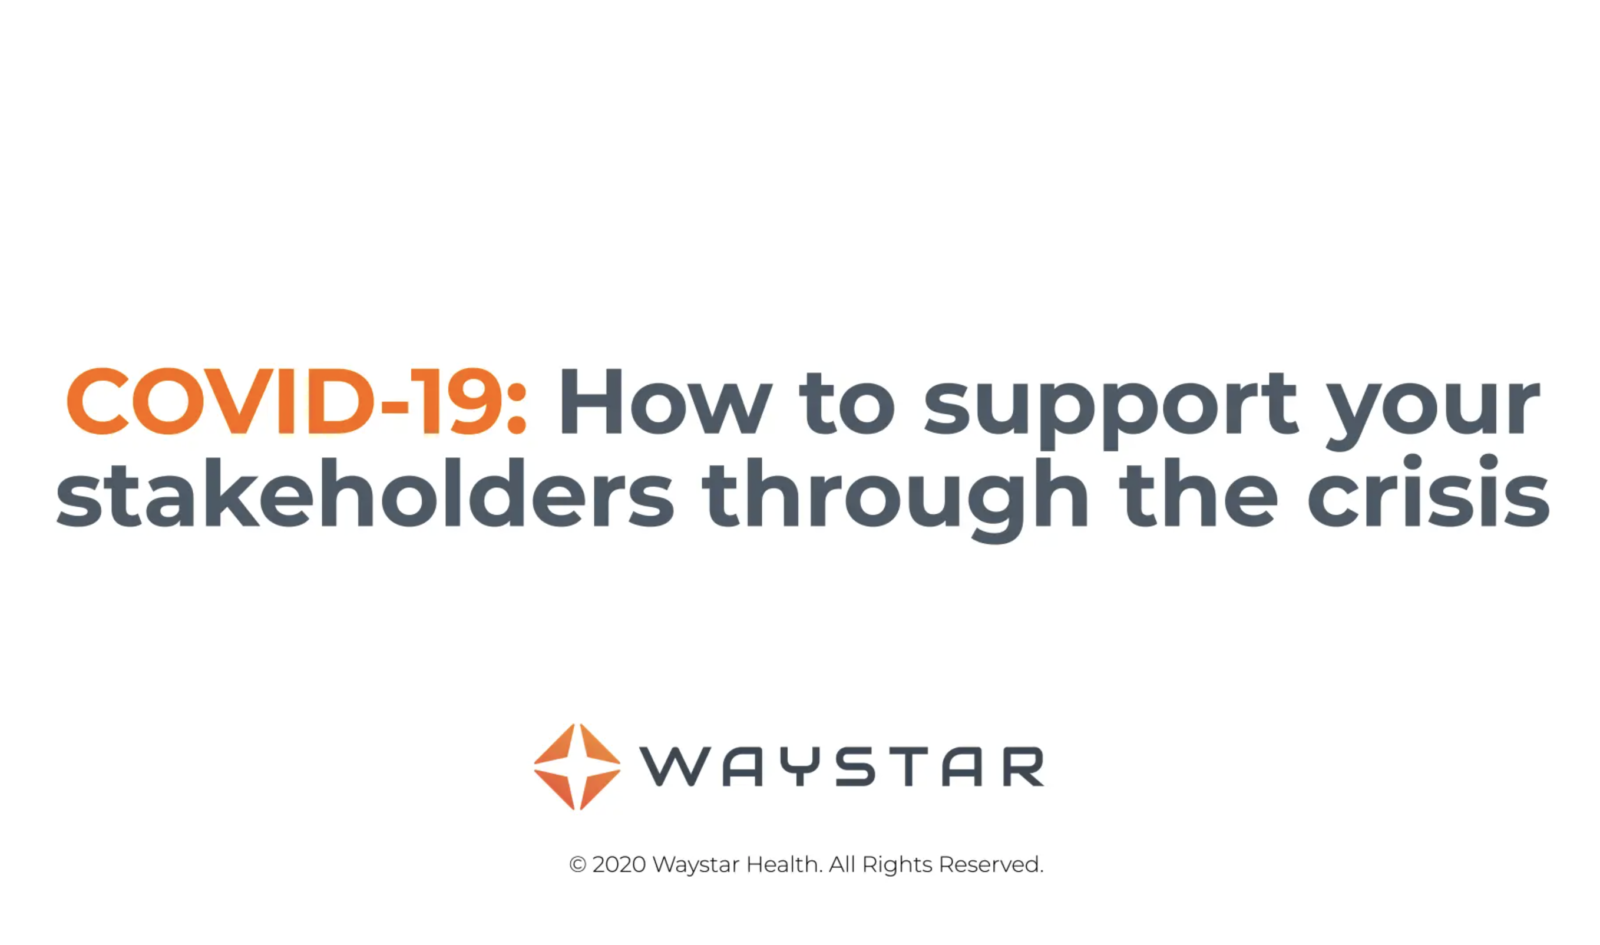 Supporting your stakeholders through the COVID-19 crisis